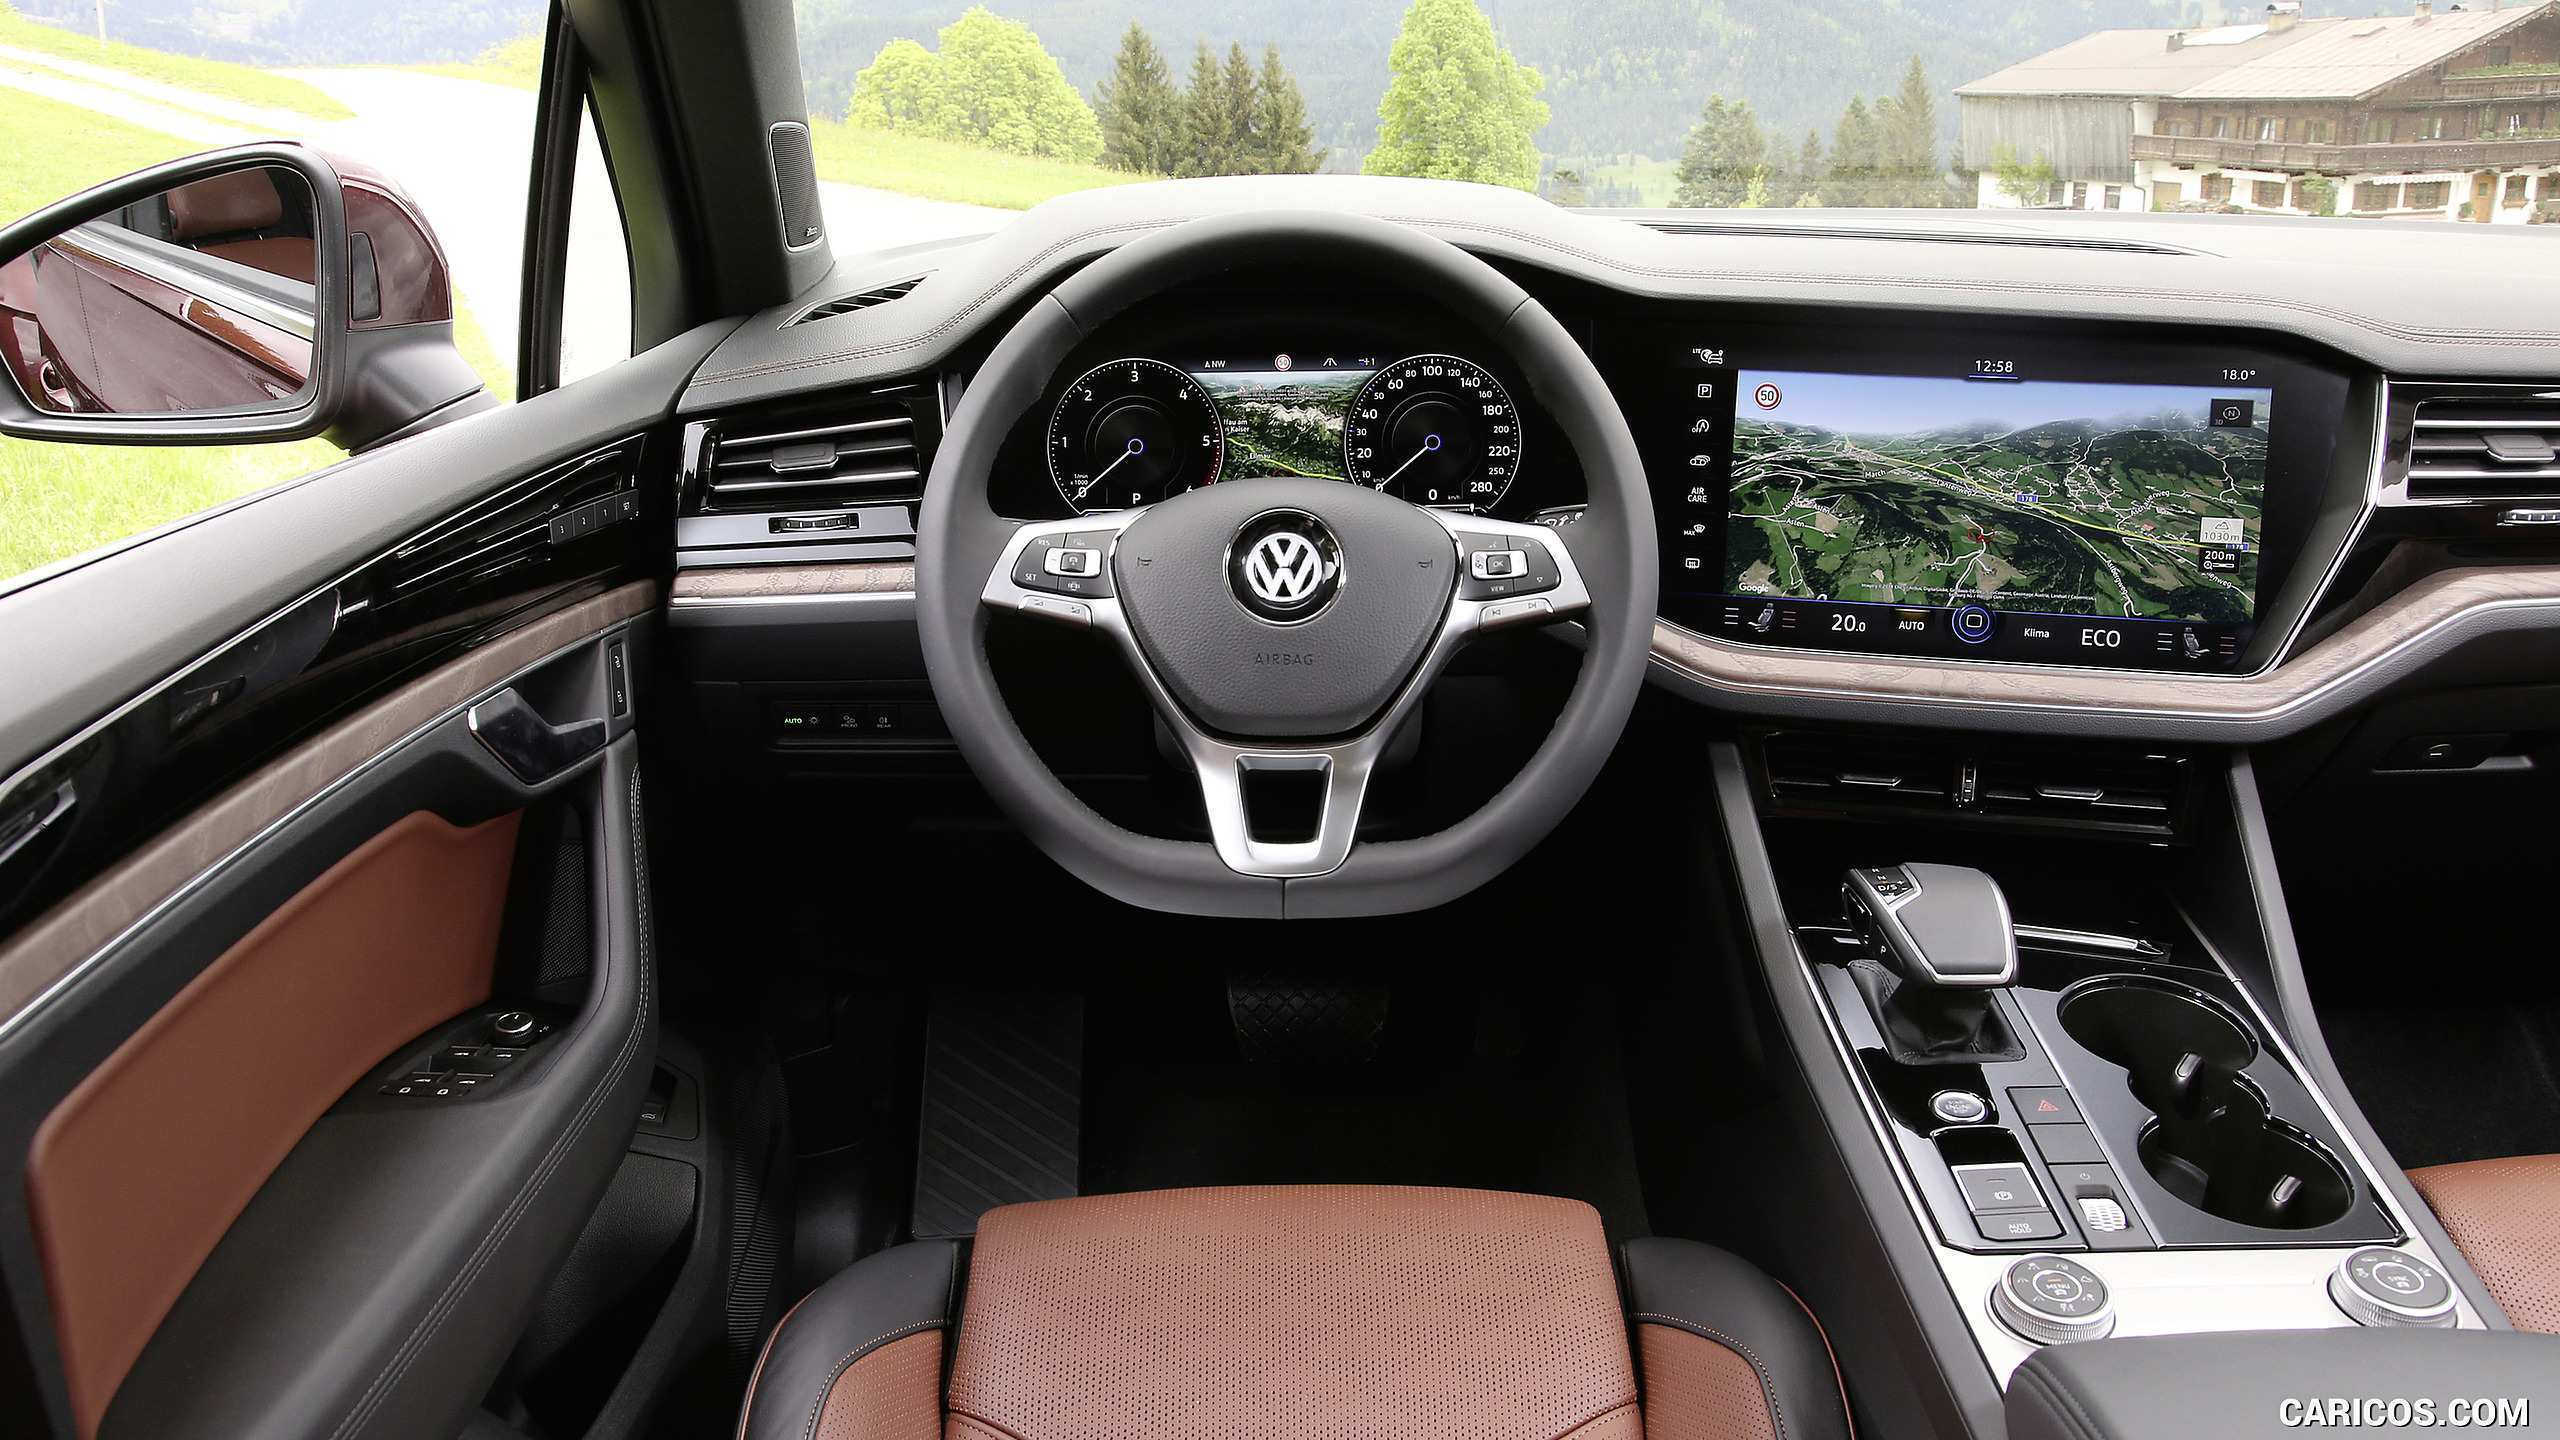 24 New 2019 Volkswagen Touareg Interior Model with 2019 Volkswagen Touareg Interior